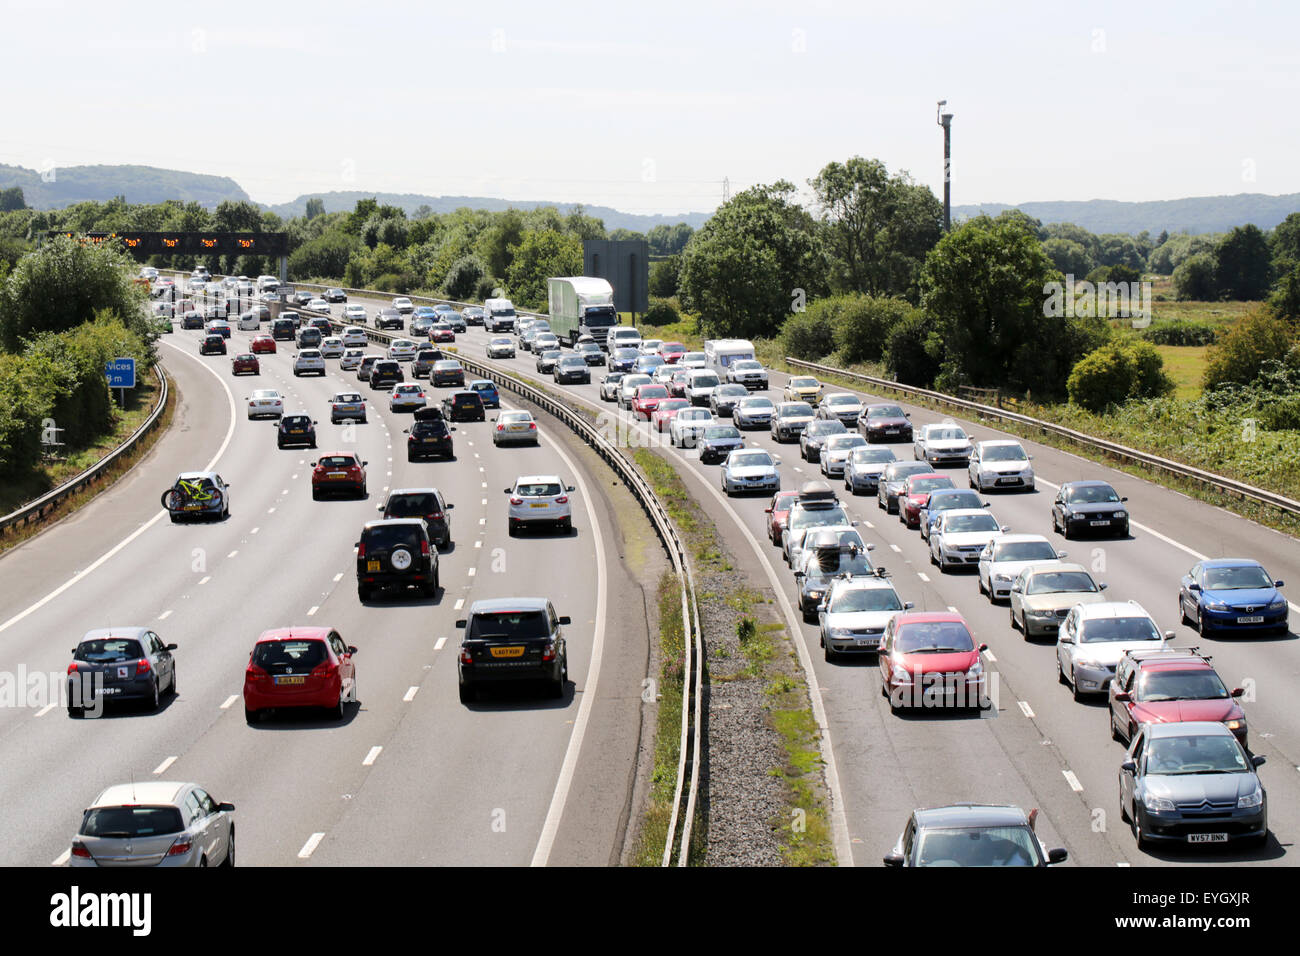 Queues of heavy traffic, in both directions, on the motorway during a busy summer weekend. Stock Photo